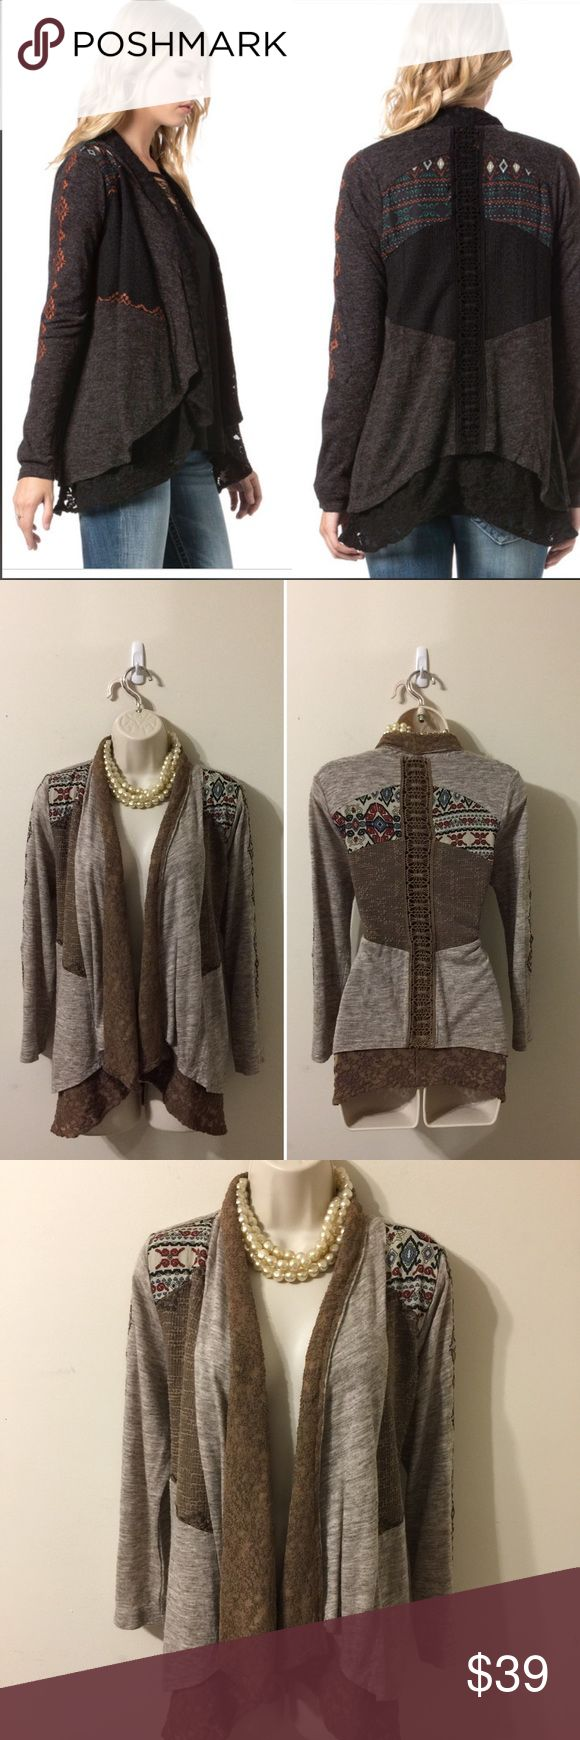 """Miss Me Plot Twist Cardigan Miss Me Plot Twist Cardigan. Good Pre-owed Condition. This cardigan is super cute and rustic. Measurements: Pit to Pit: 20"""", Sleeve: 22"""", Length: 28"""". Miss Me Sweaters Cardigans"""